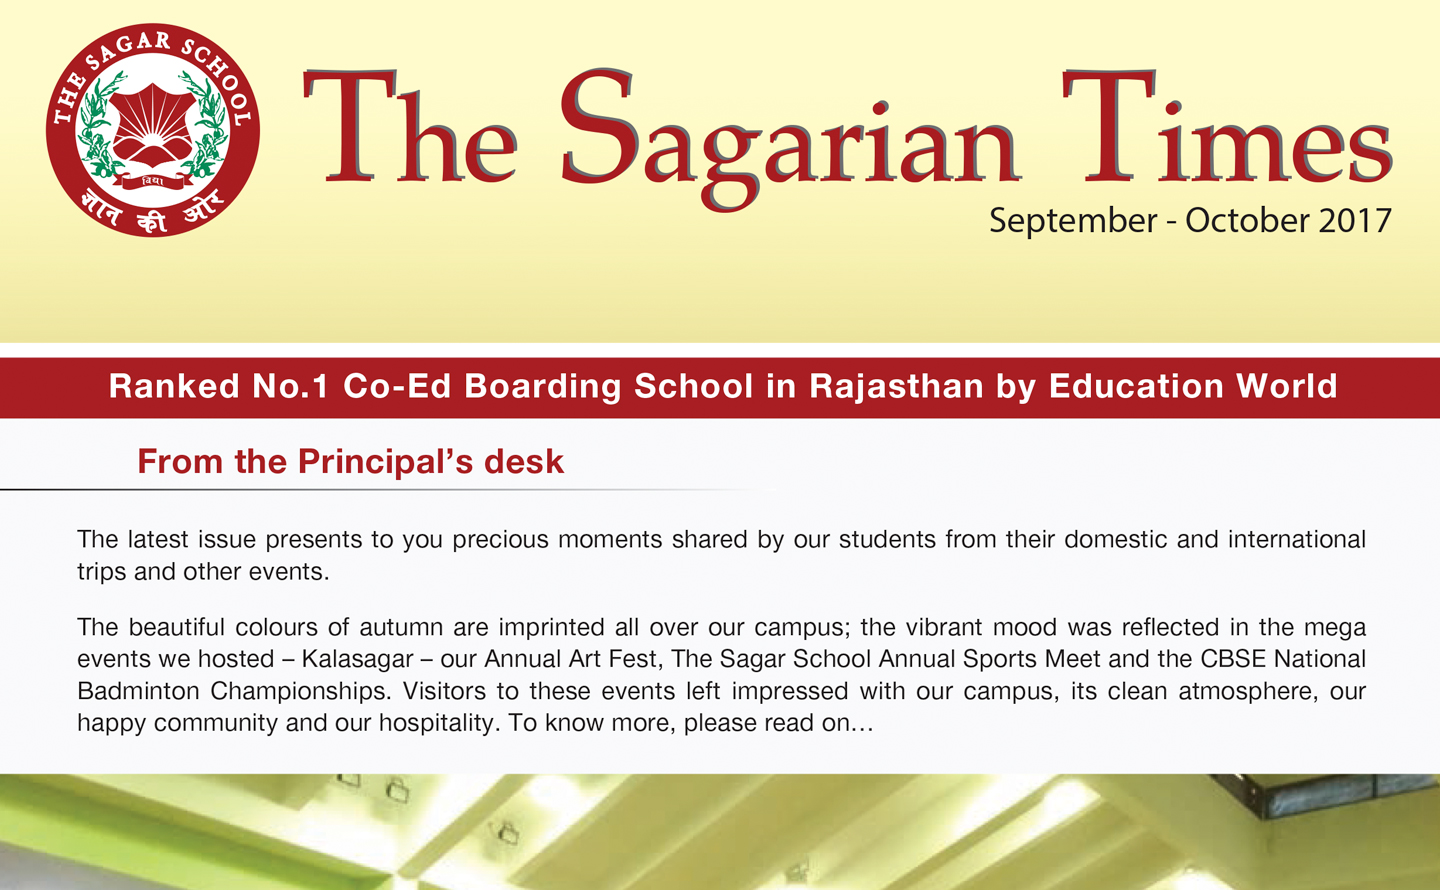 The Sagarian Times September - October 2017